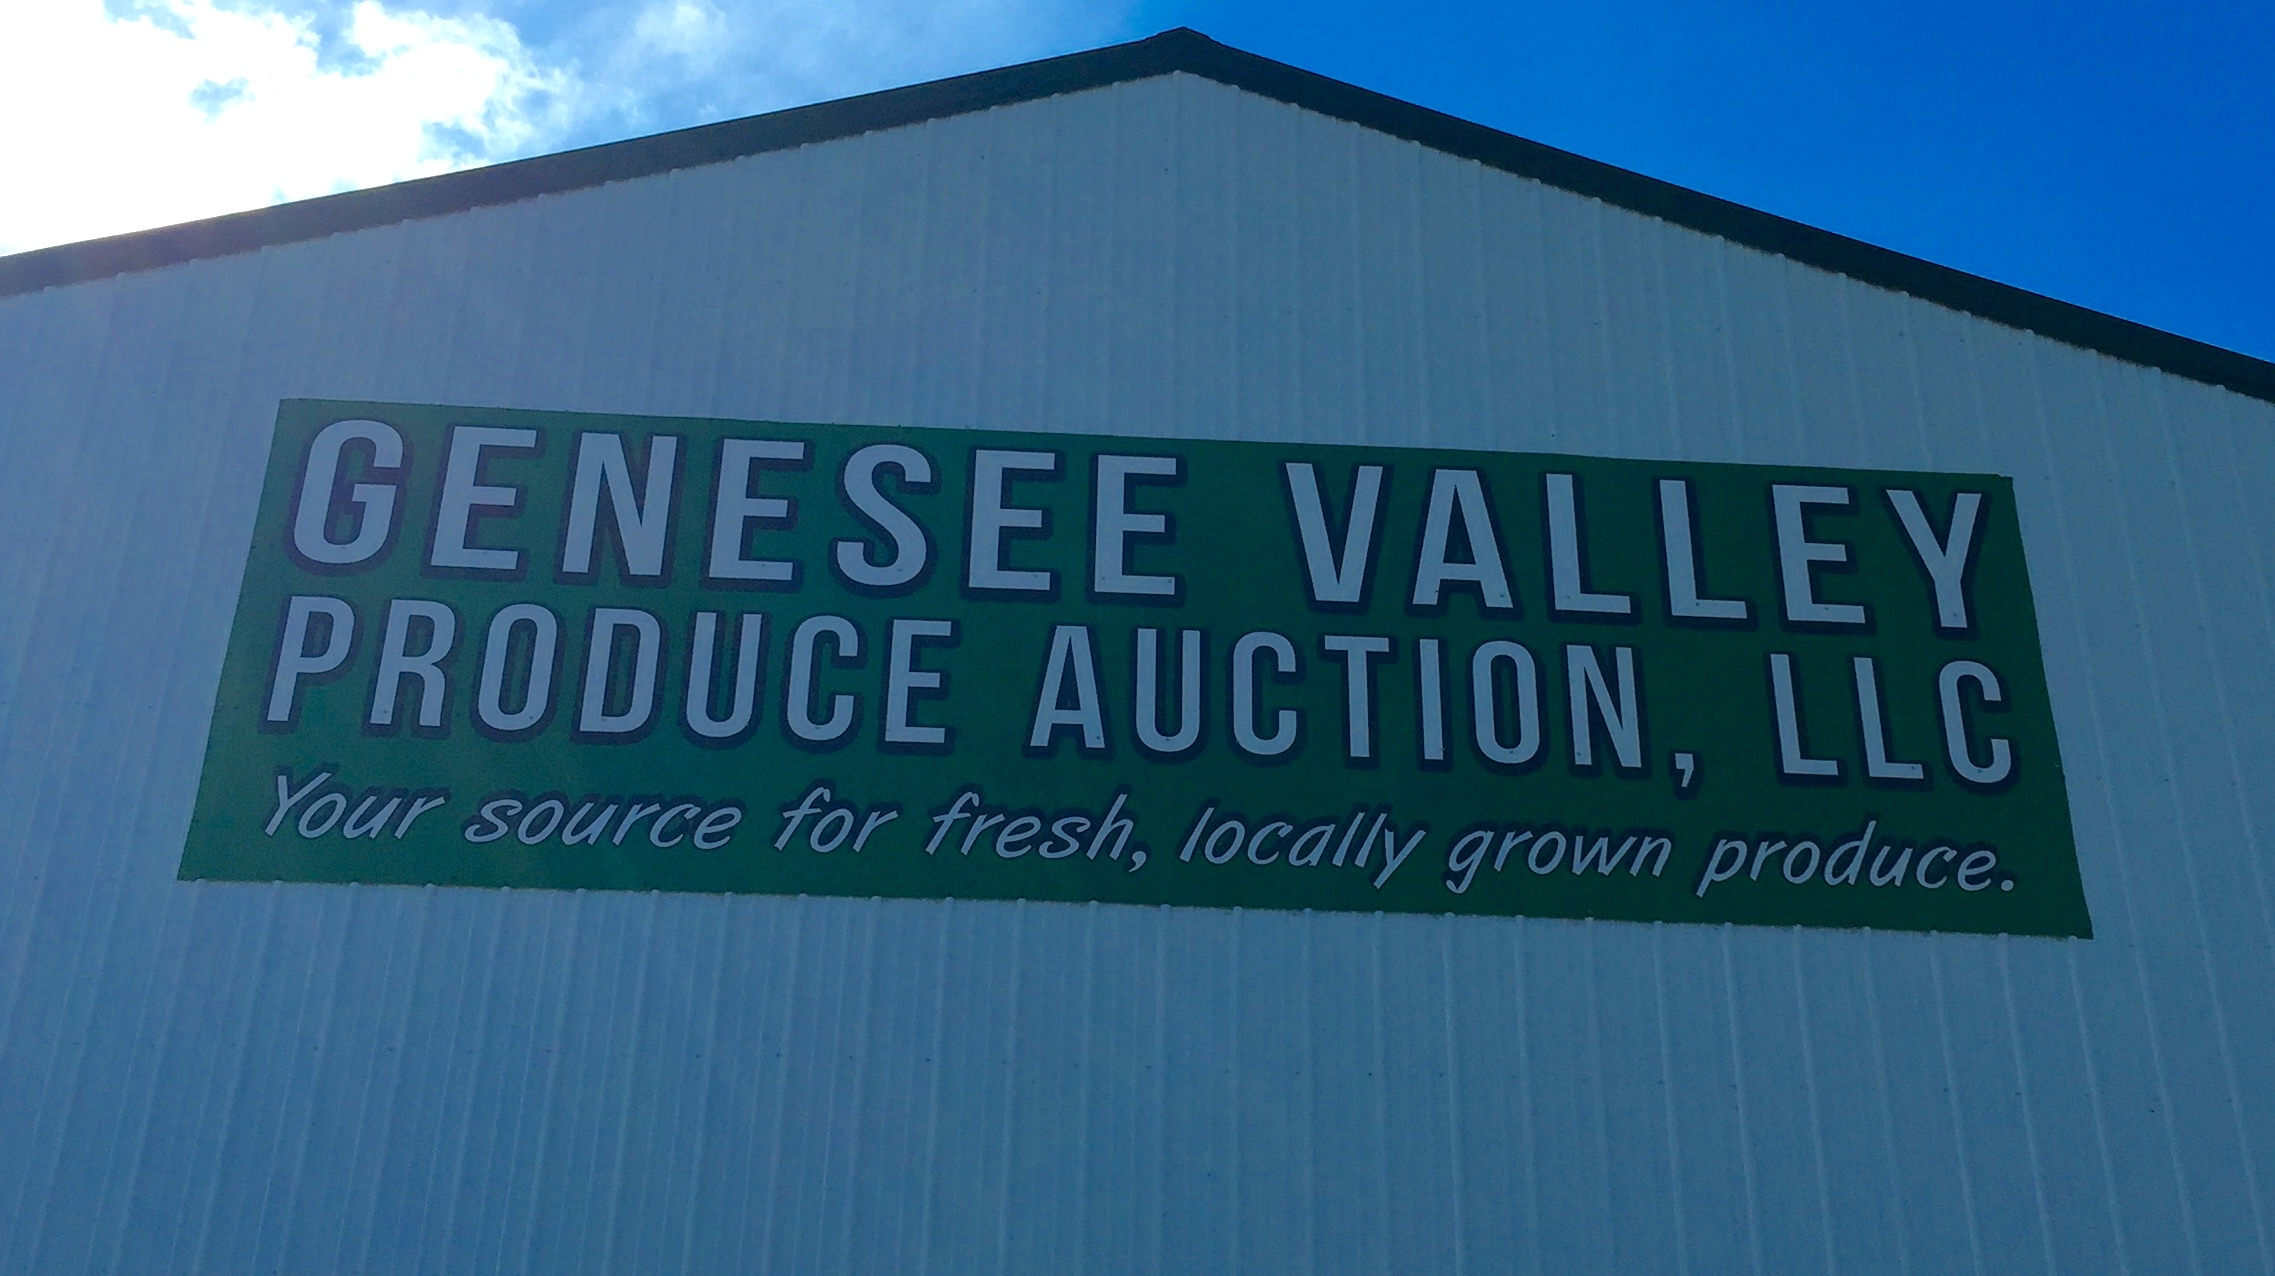 Genesee Valley Produce Auction, LLC